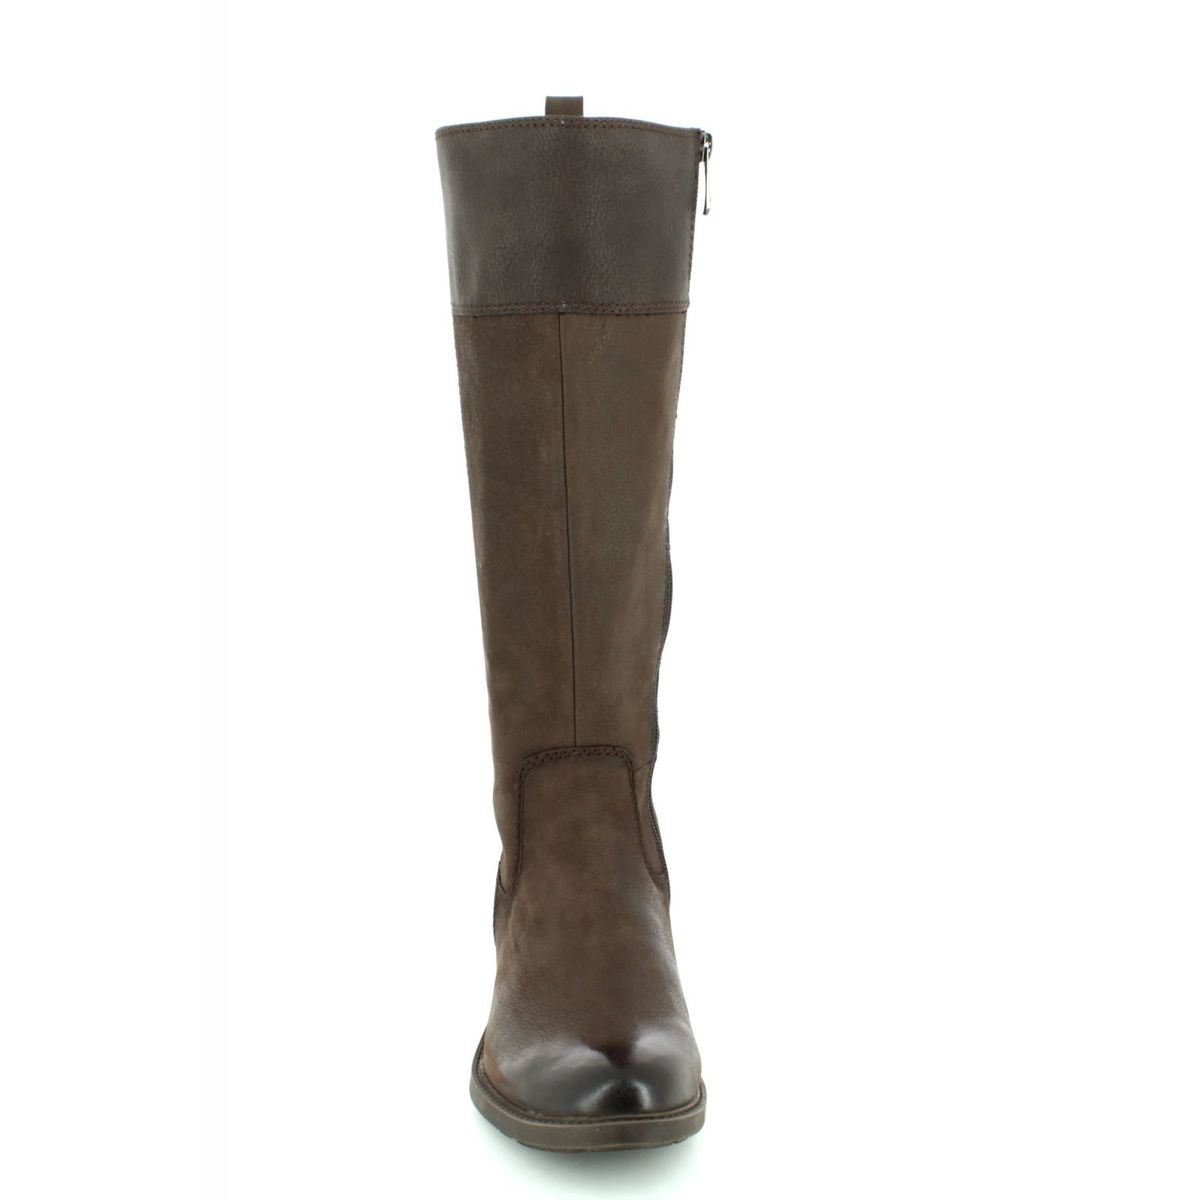 c3903359fc4 Marco Tozzi Knee-high Boots - Brown - 25616 325 FILAGO